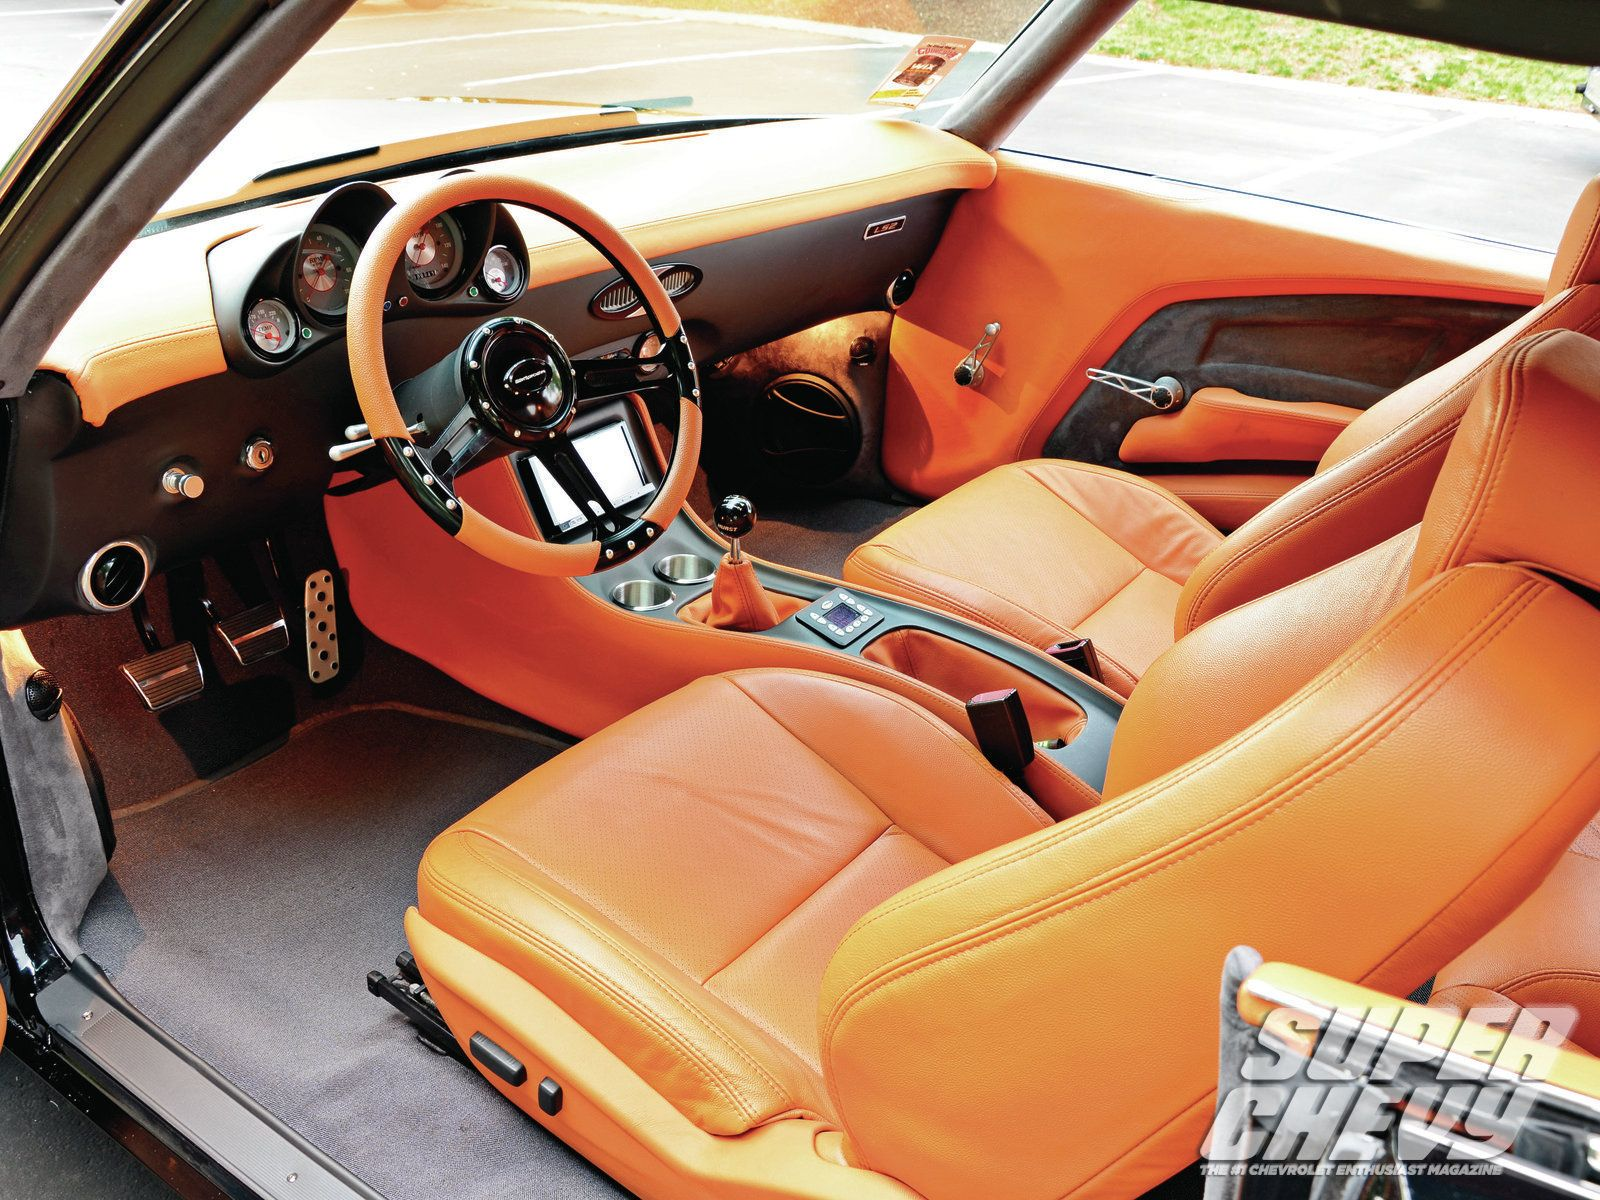 hight resolution of 1970 chevrolet chevelle ss interior photo 6 custom dash and console door panels brown orange